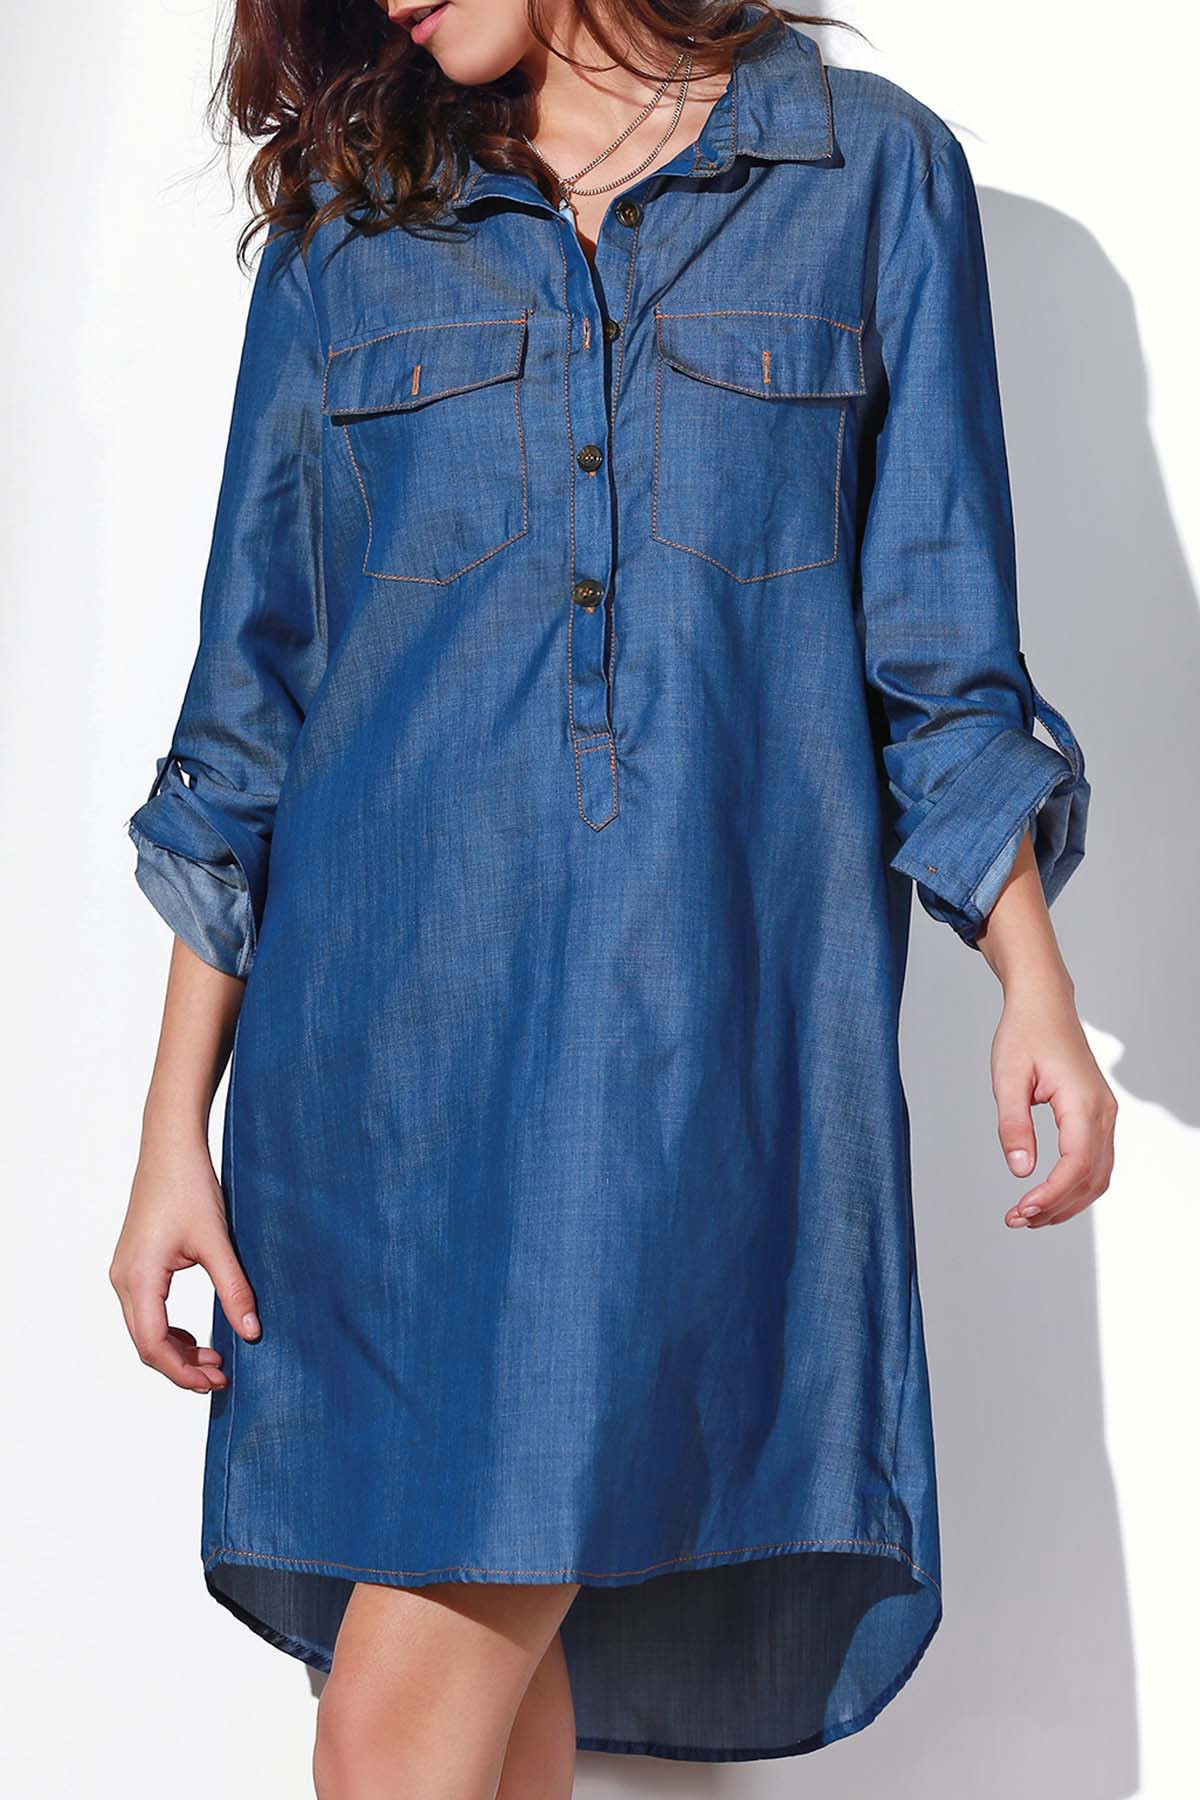 Rolled Up Sleeve Button Design Shirt Dress